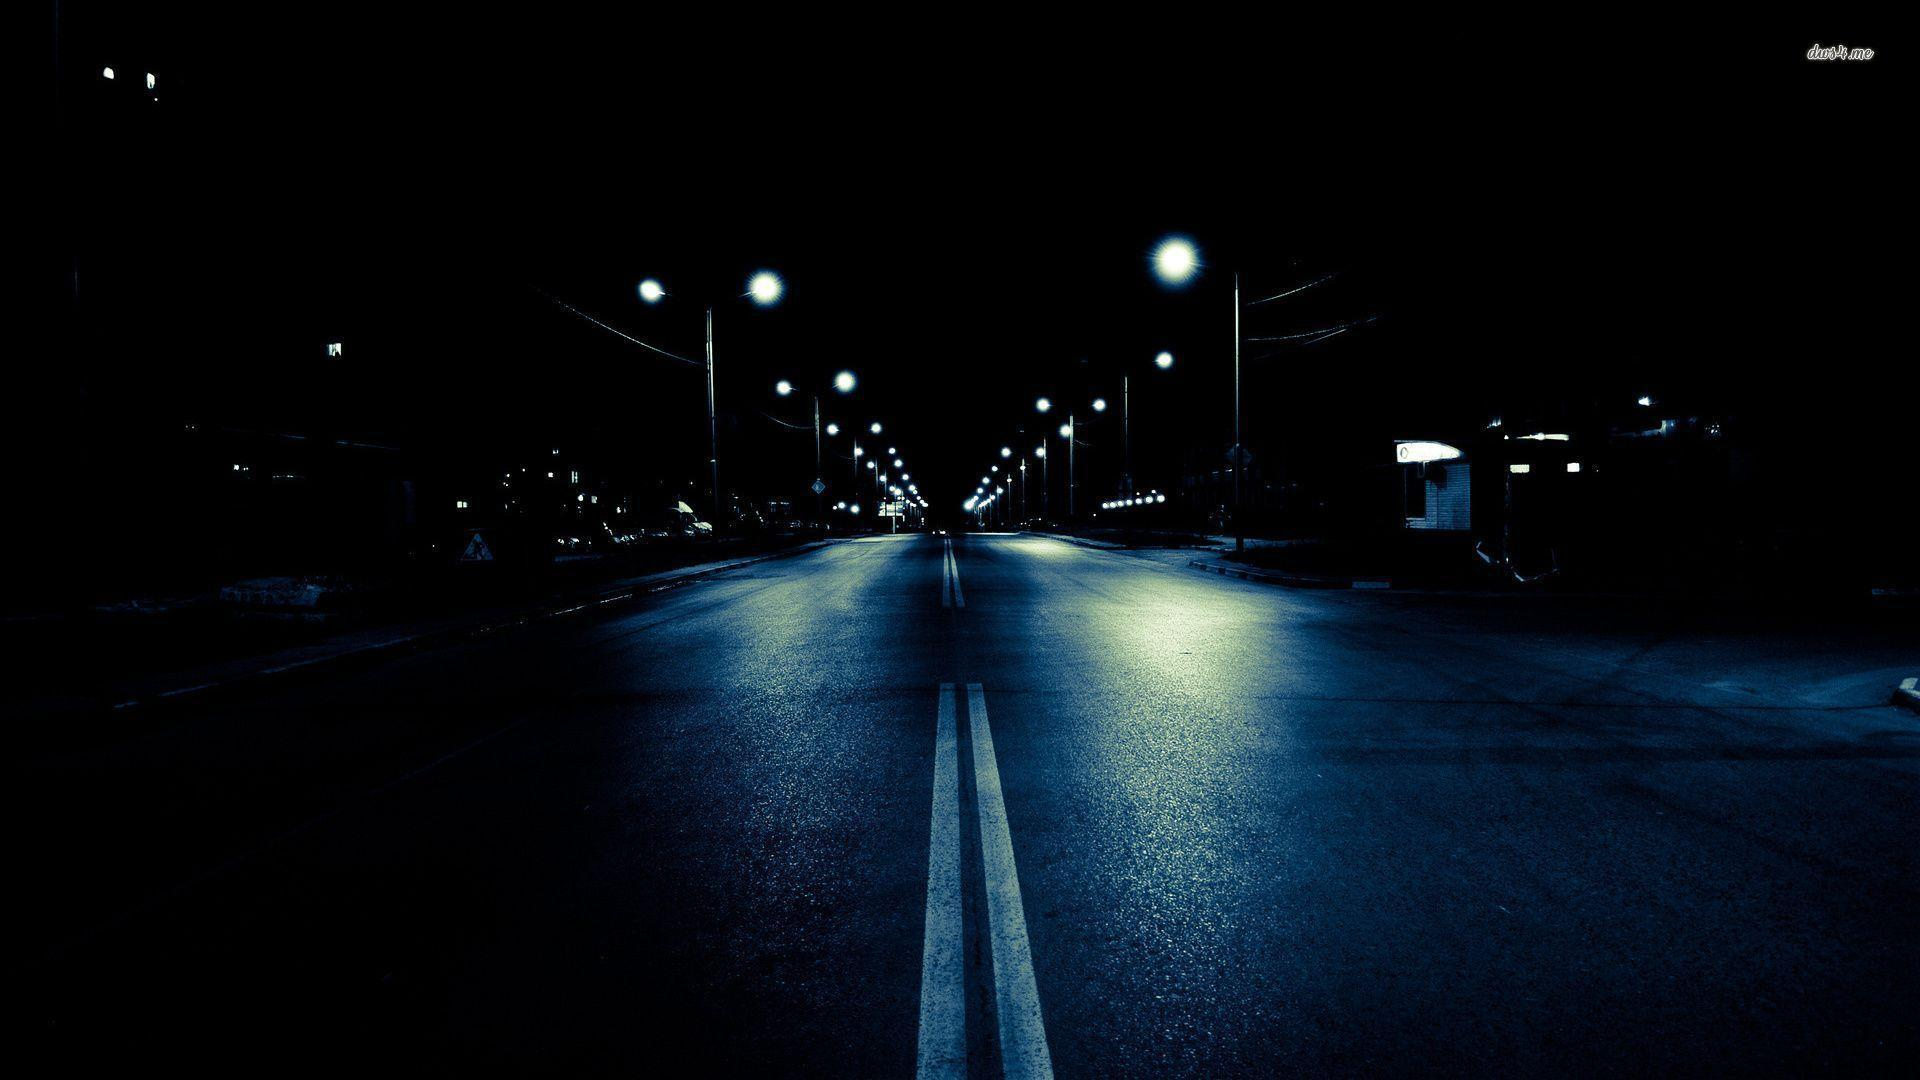 Dark City Street At Night City Street Backgrounds Wallpaper Cave